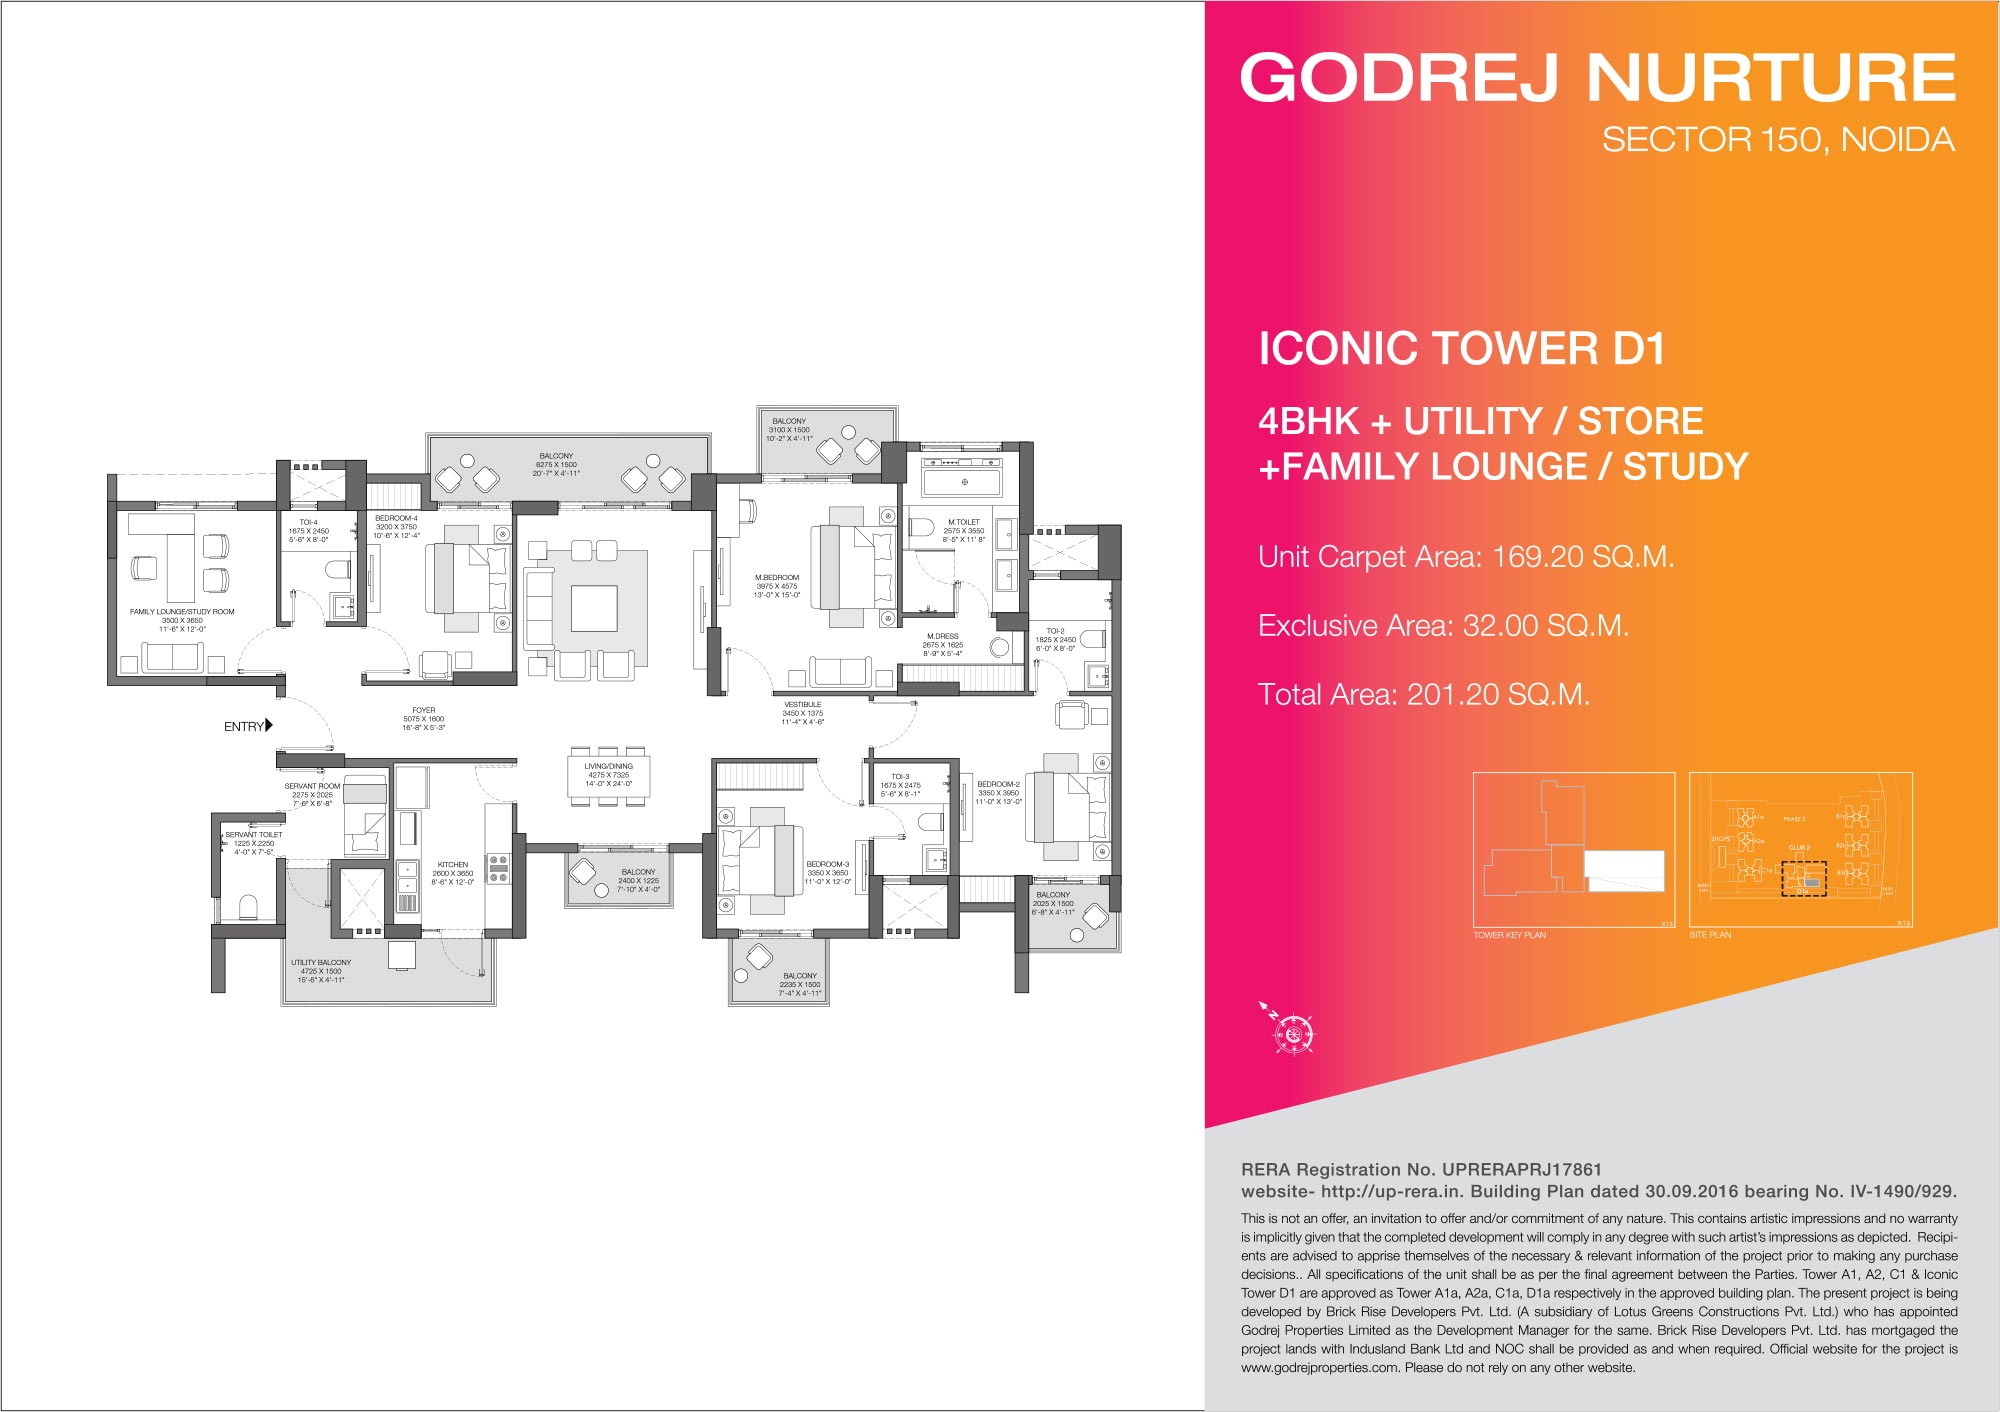 4 BHK + Utility/Store + Family Lounge - Iconic Tower D1